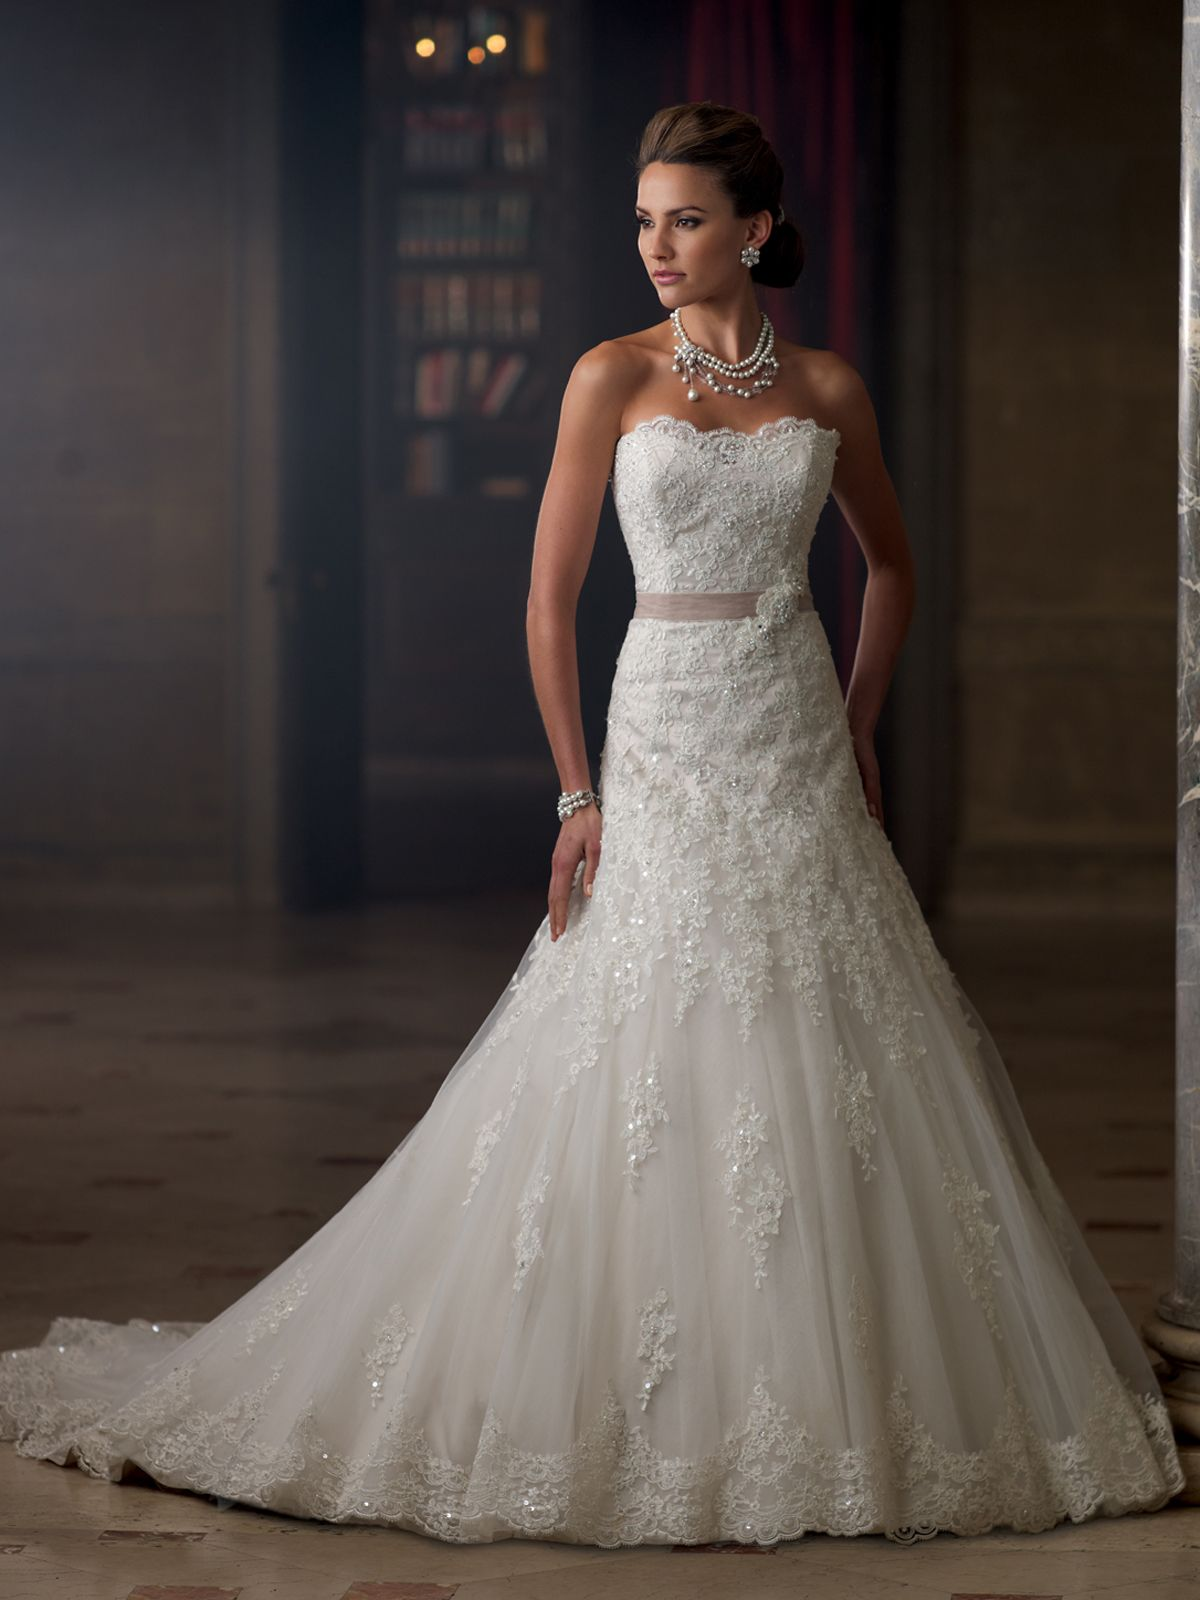 Wedding Dresses 2013 Collection Strapless lace appliqué